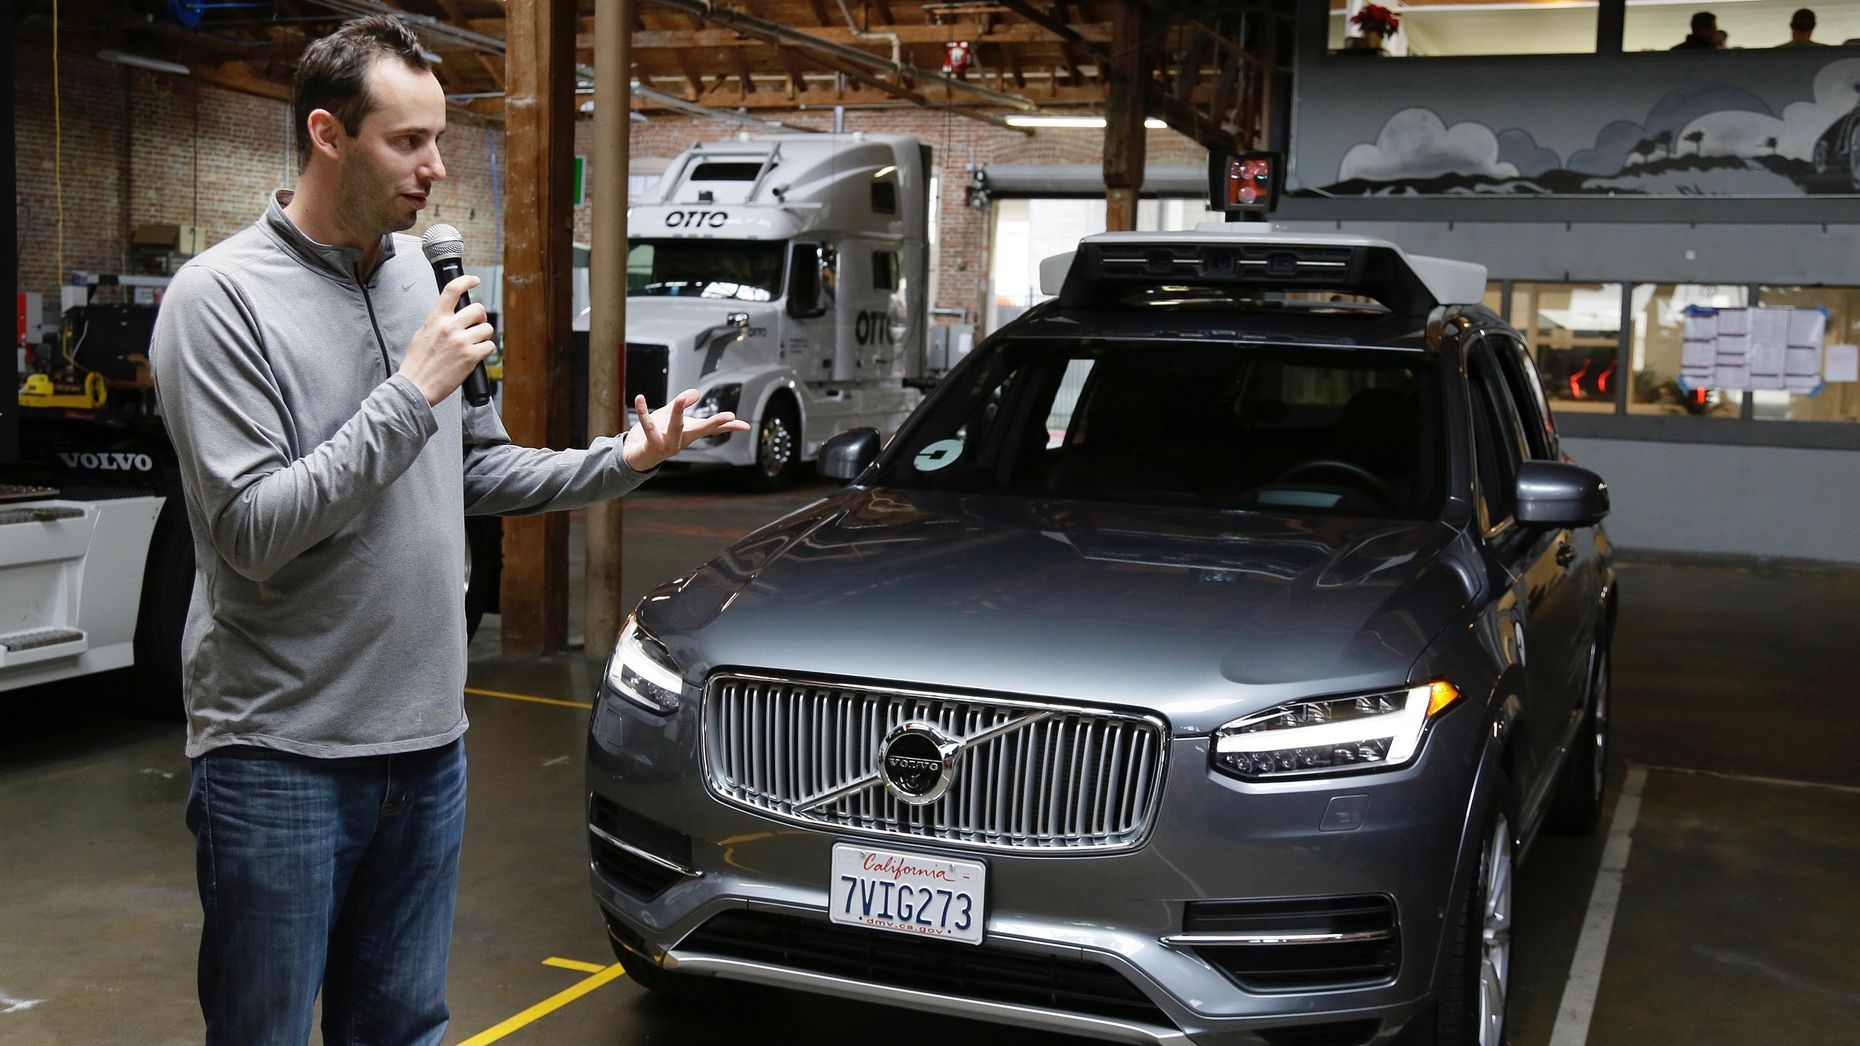 Anthony Levandowski discussing Uber's self-driving car effort last December. Photo by AP.